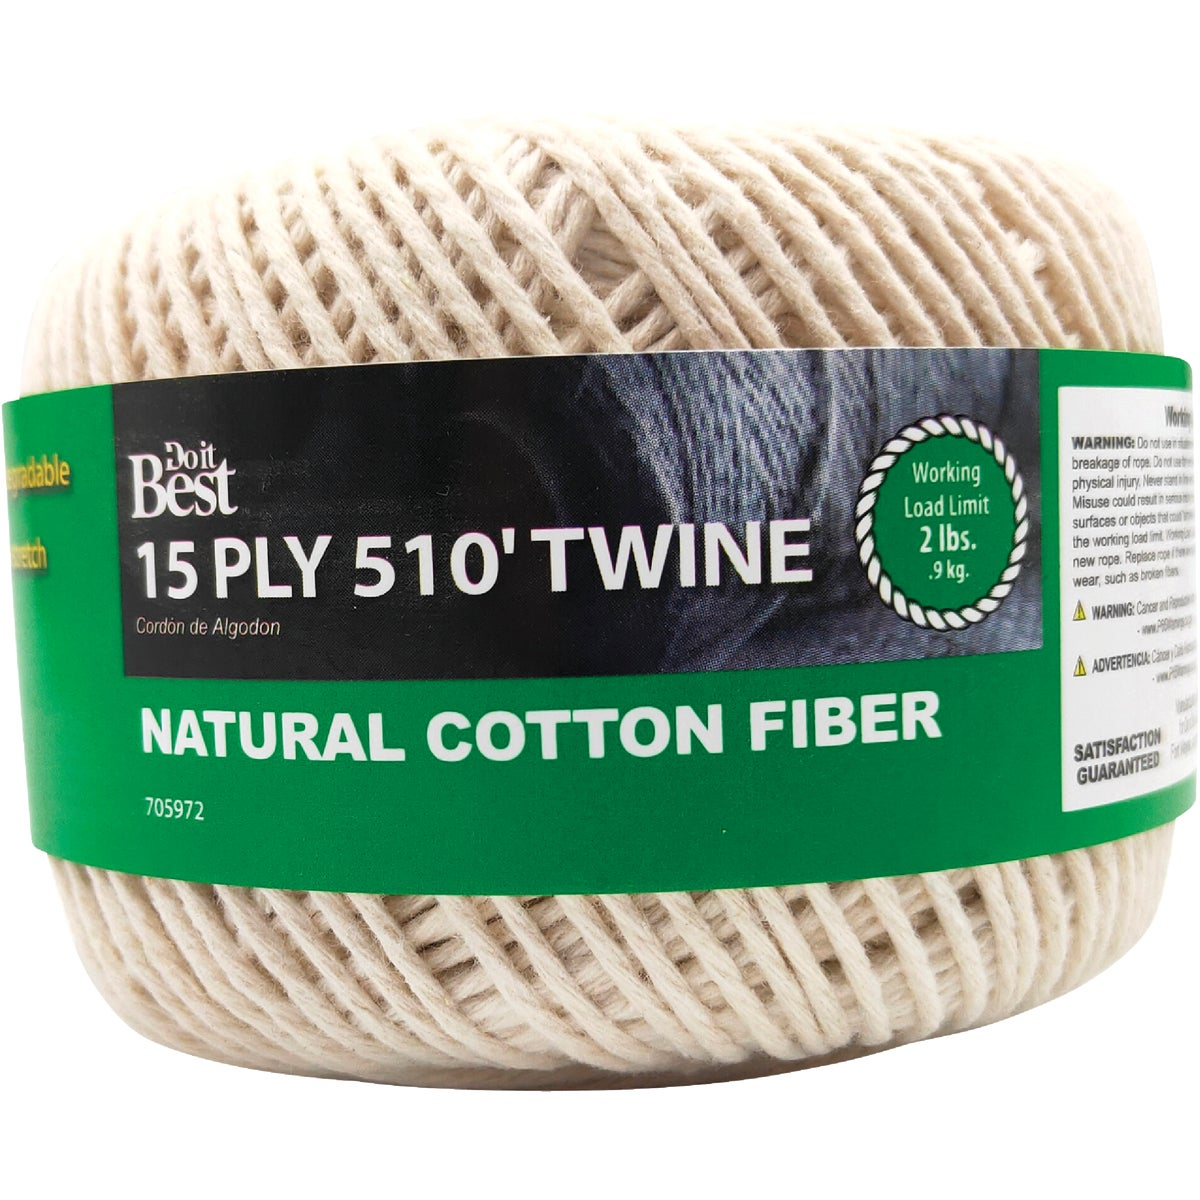 15PLY 510' COTTON TWINE - 705972 by Do it Best